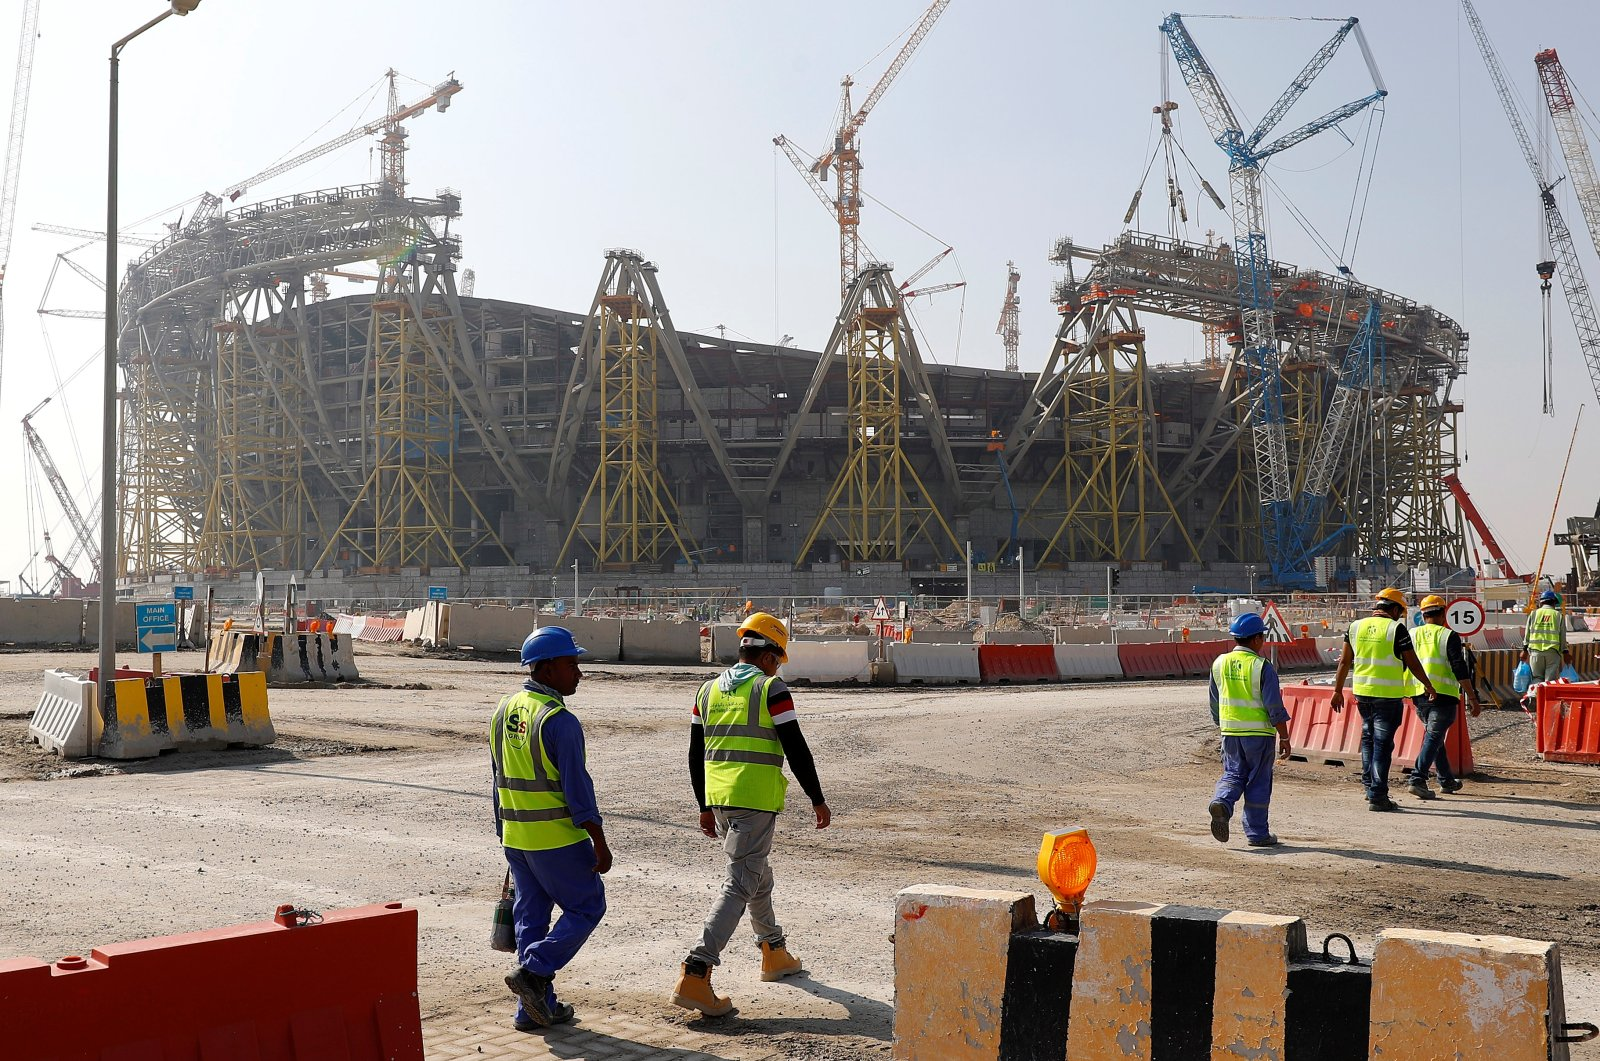 This file photo shows workers walking towards the construction site of the Lusail Stadium which will be build for the upcoming 2022 FIFA World Cup during a stadium tour in Doha, Qatar, Dec.20, 2019. (Reuters Photo)